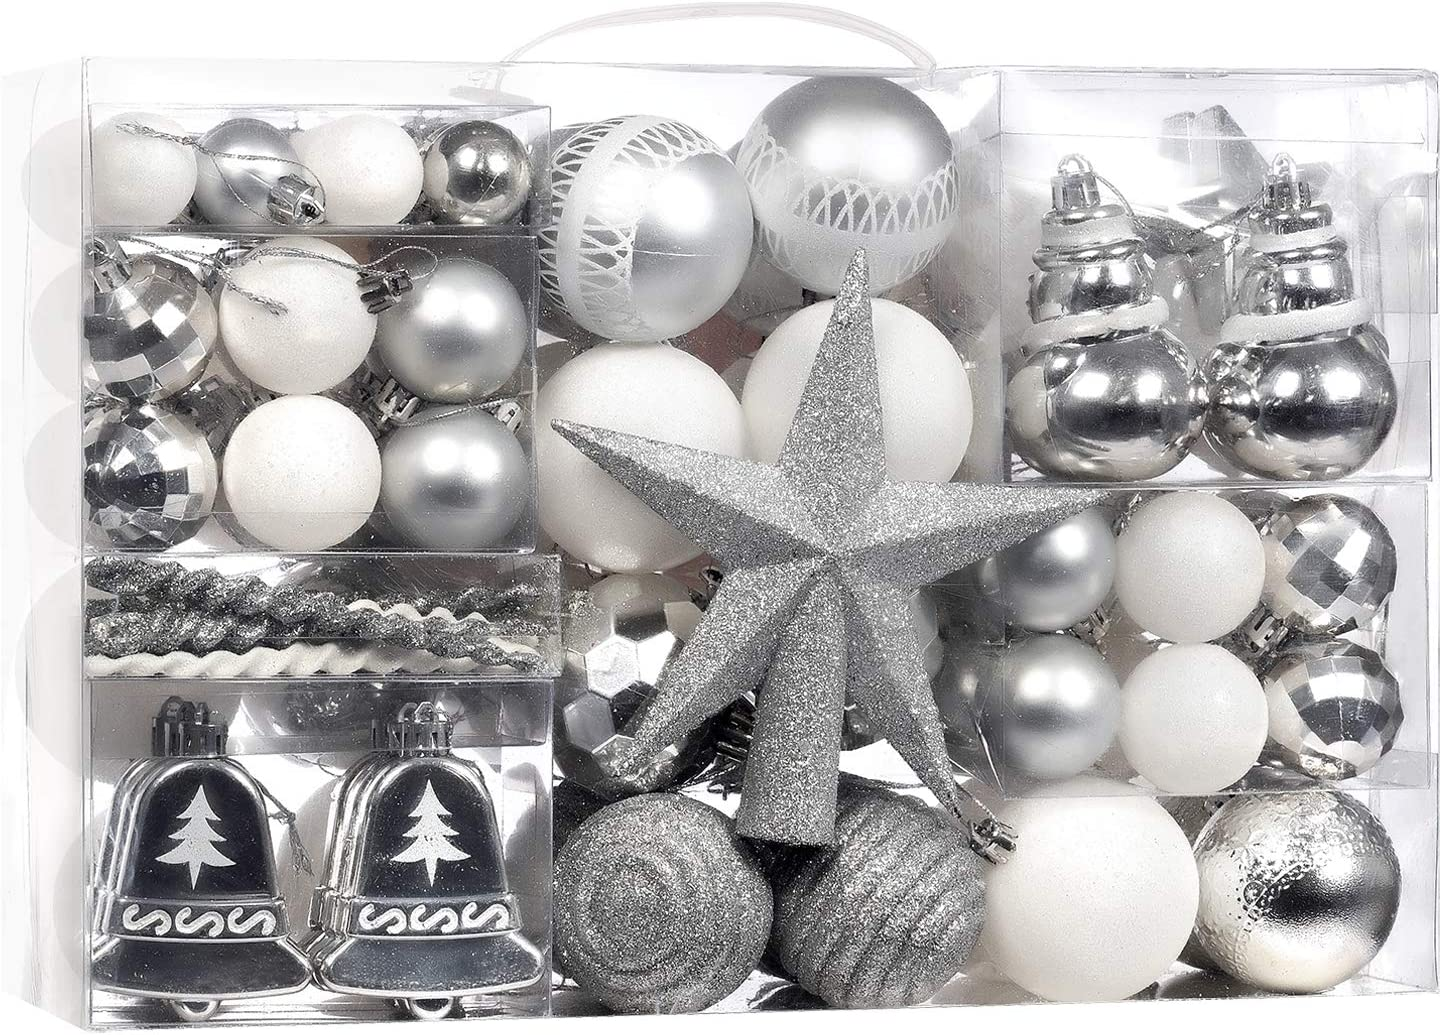 100-Pcs Silver Christmas Ball Ornaments Assorted Shatterproof Christmas Ball Set with Reusable Hand-held Gift Package for Xmas Tree Decoration